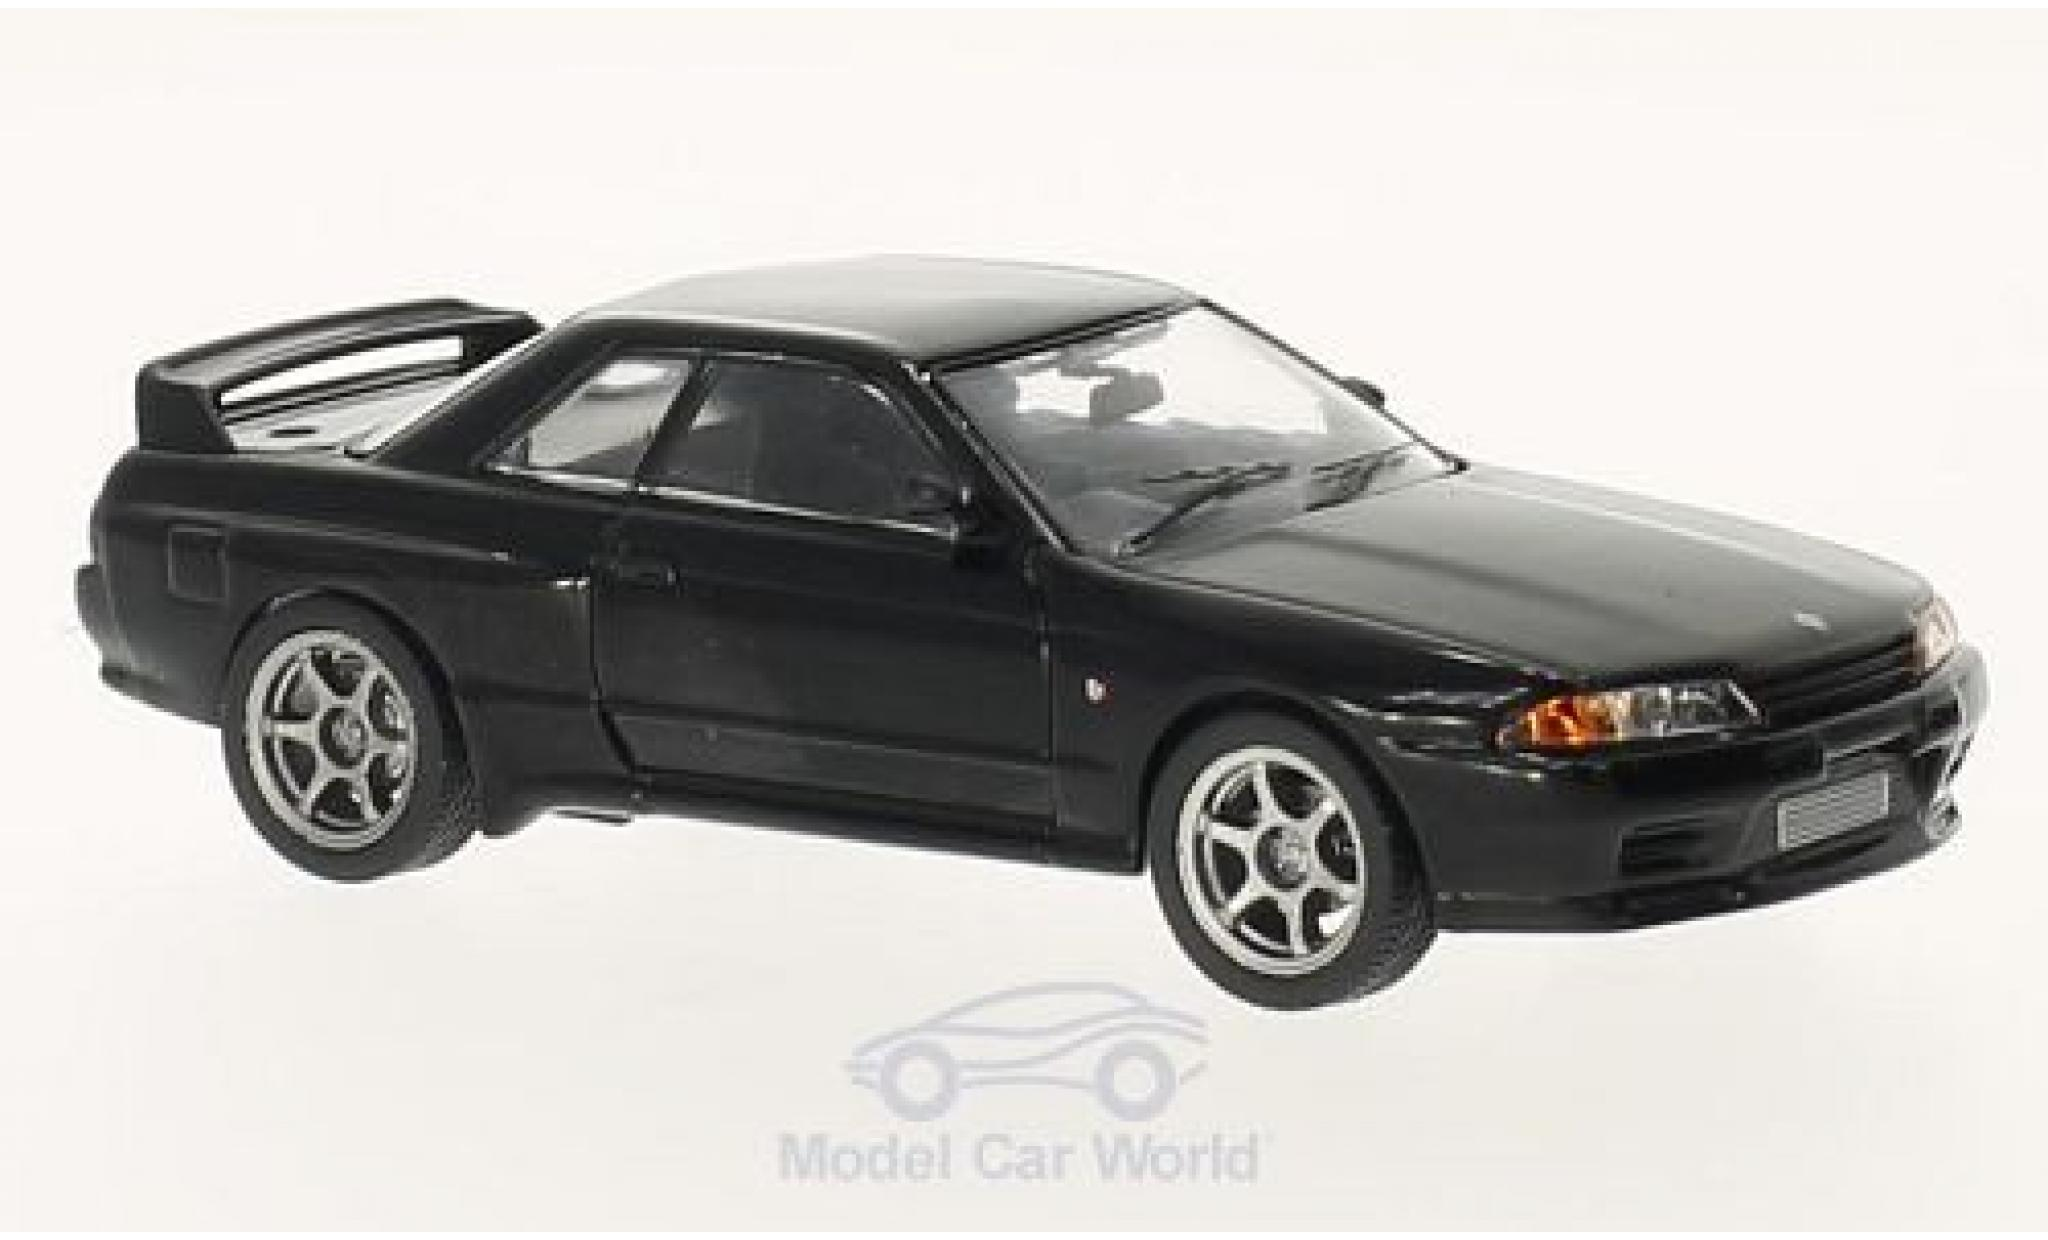 Nissan Skyline 1/43 Greenlight black Fast & Furious 7 1989